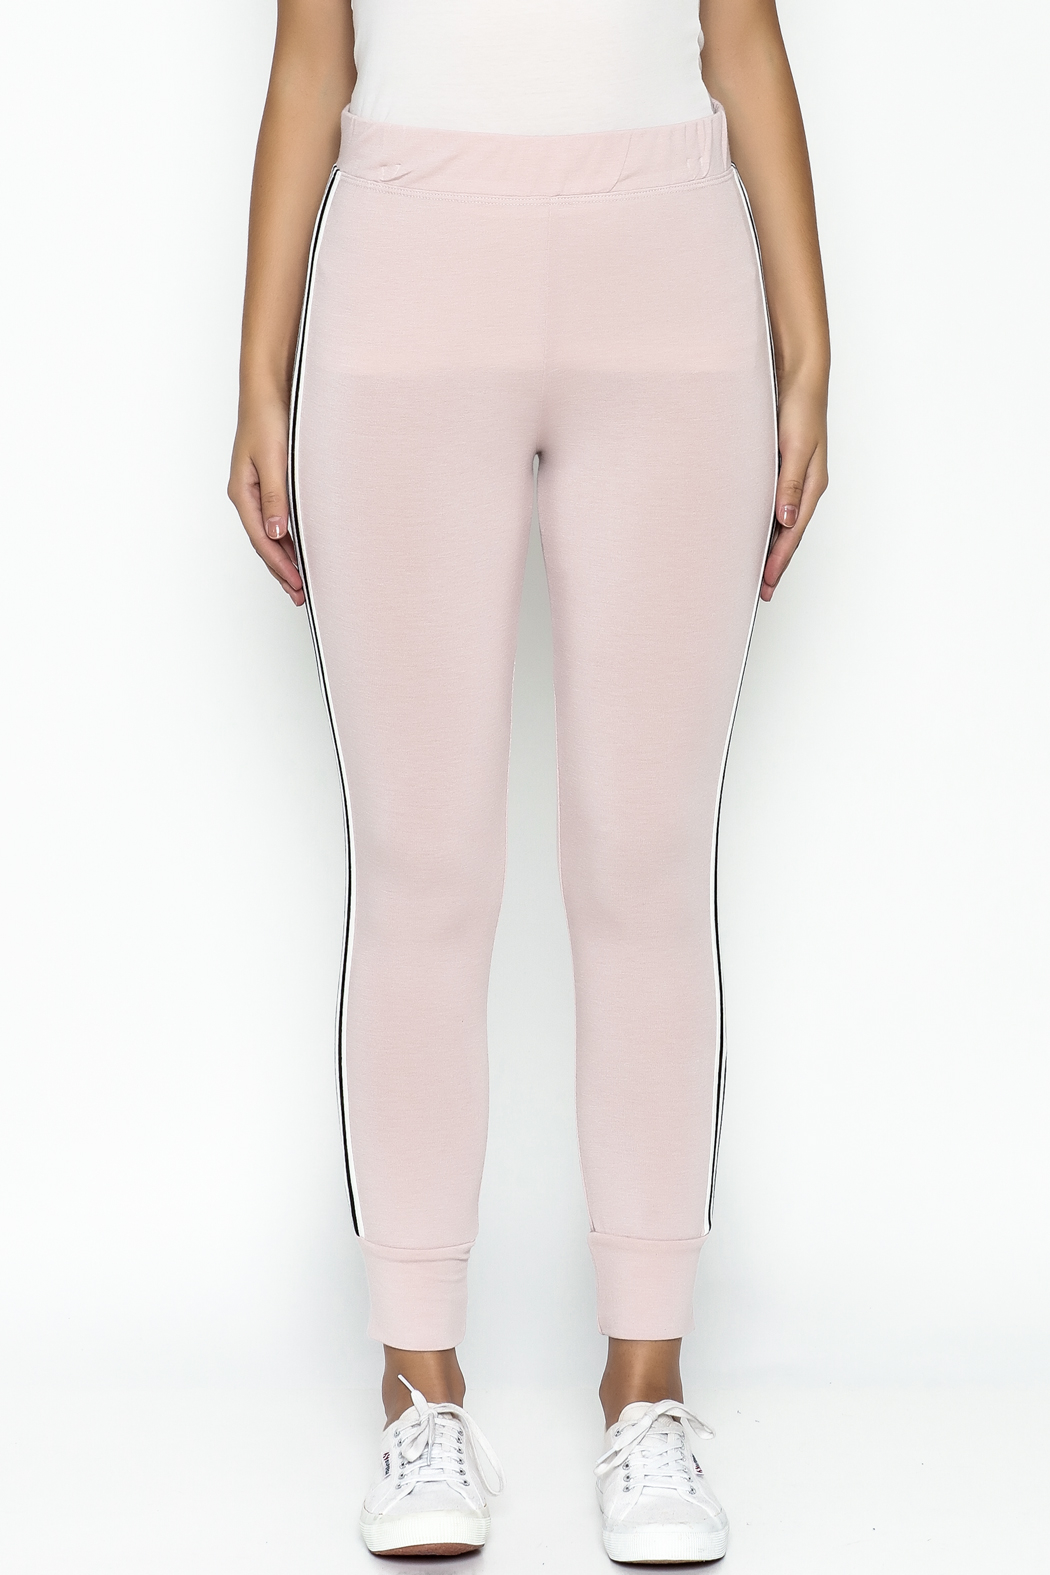 Happy Days USA Millennial Pink Jogger Pants - Front Full Image